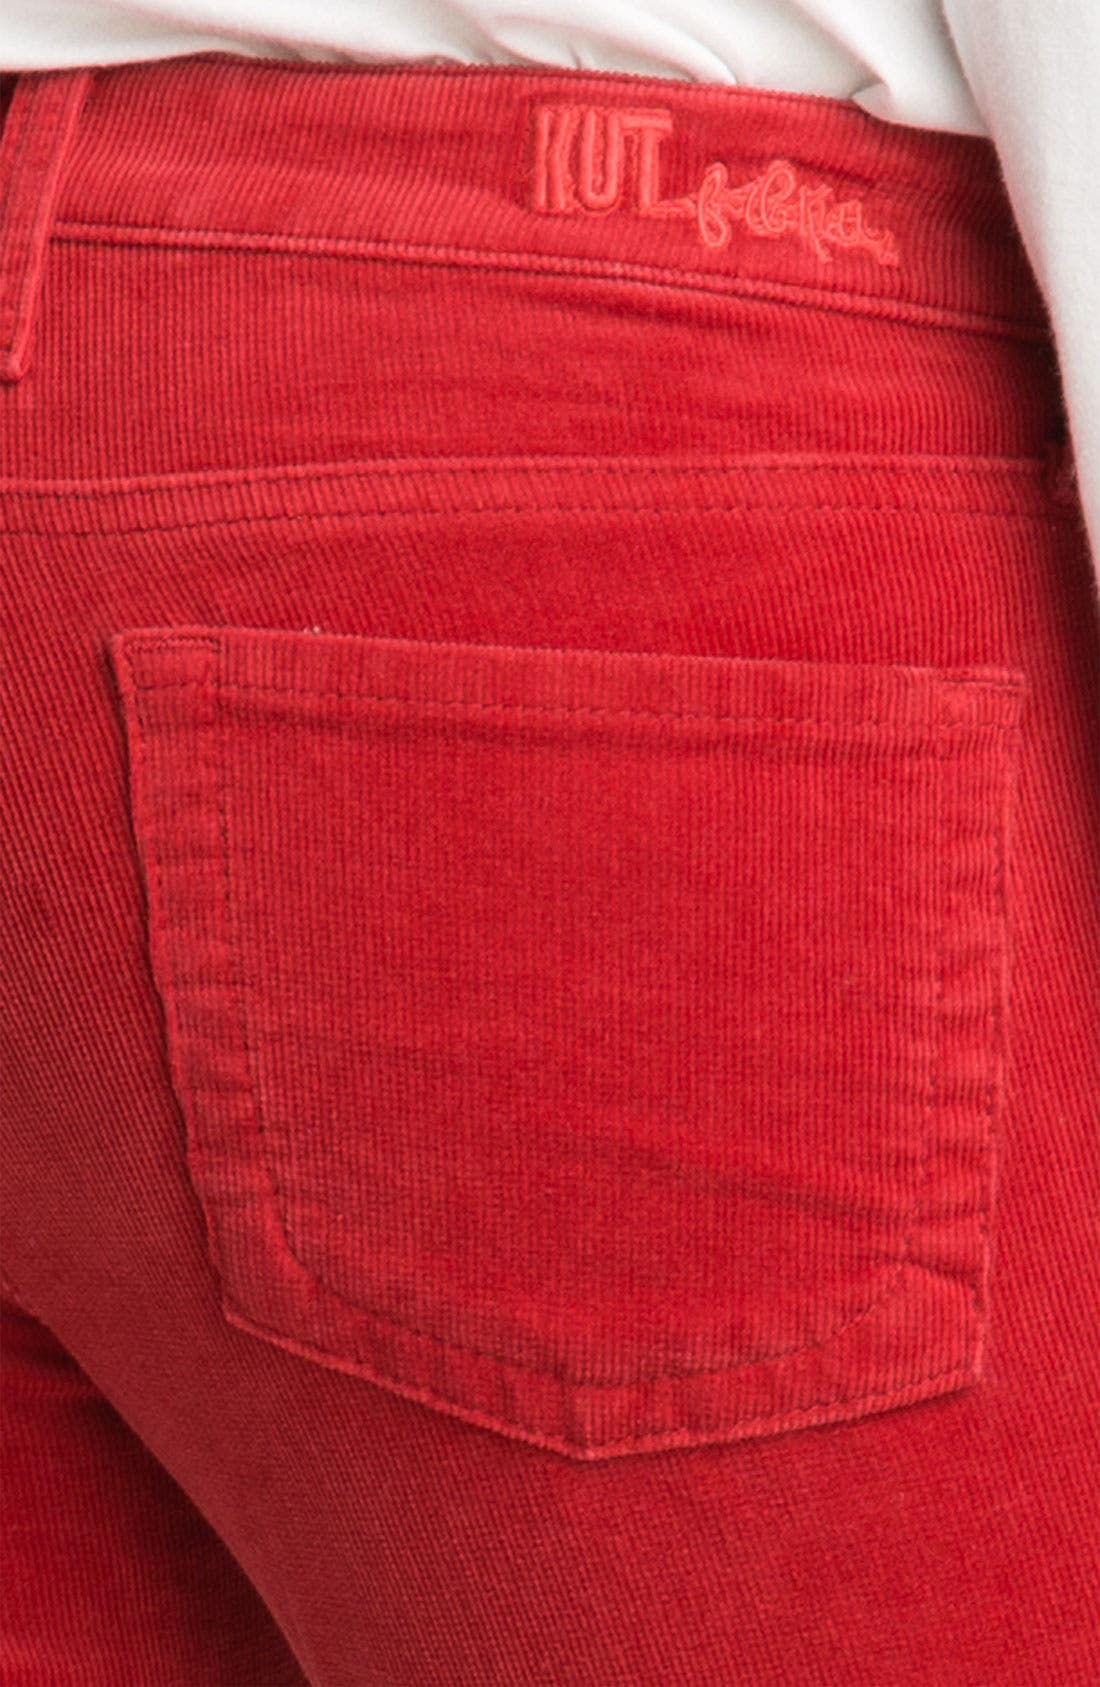 Baby Bootcut Corduroy Jeans,                             Alternate thumbnail 49, color,